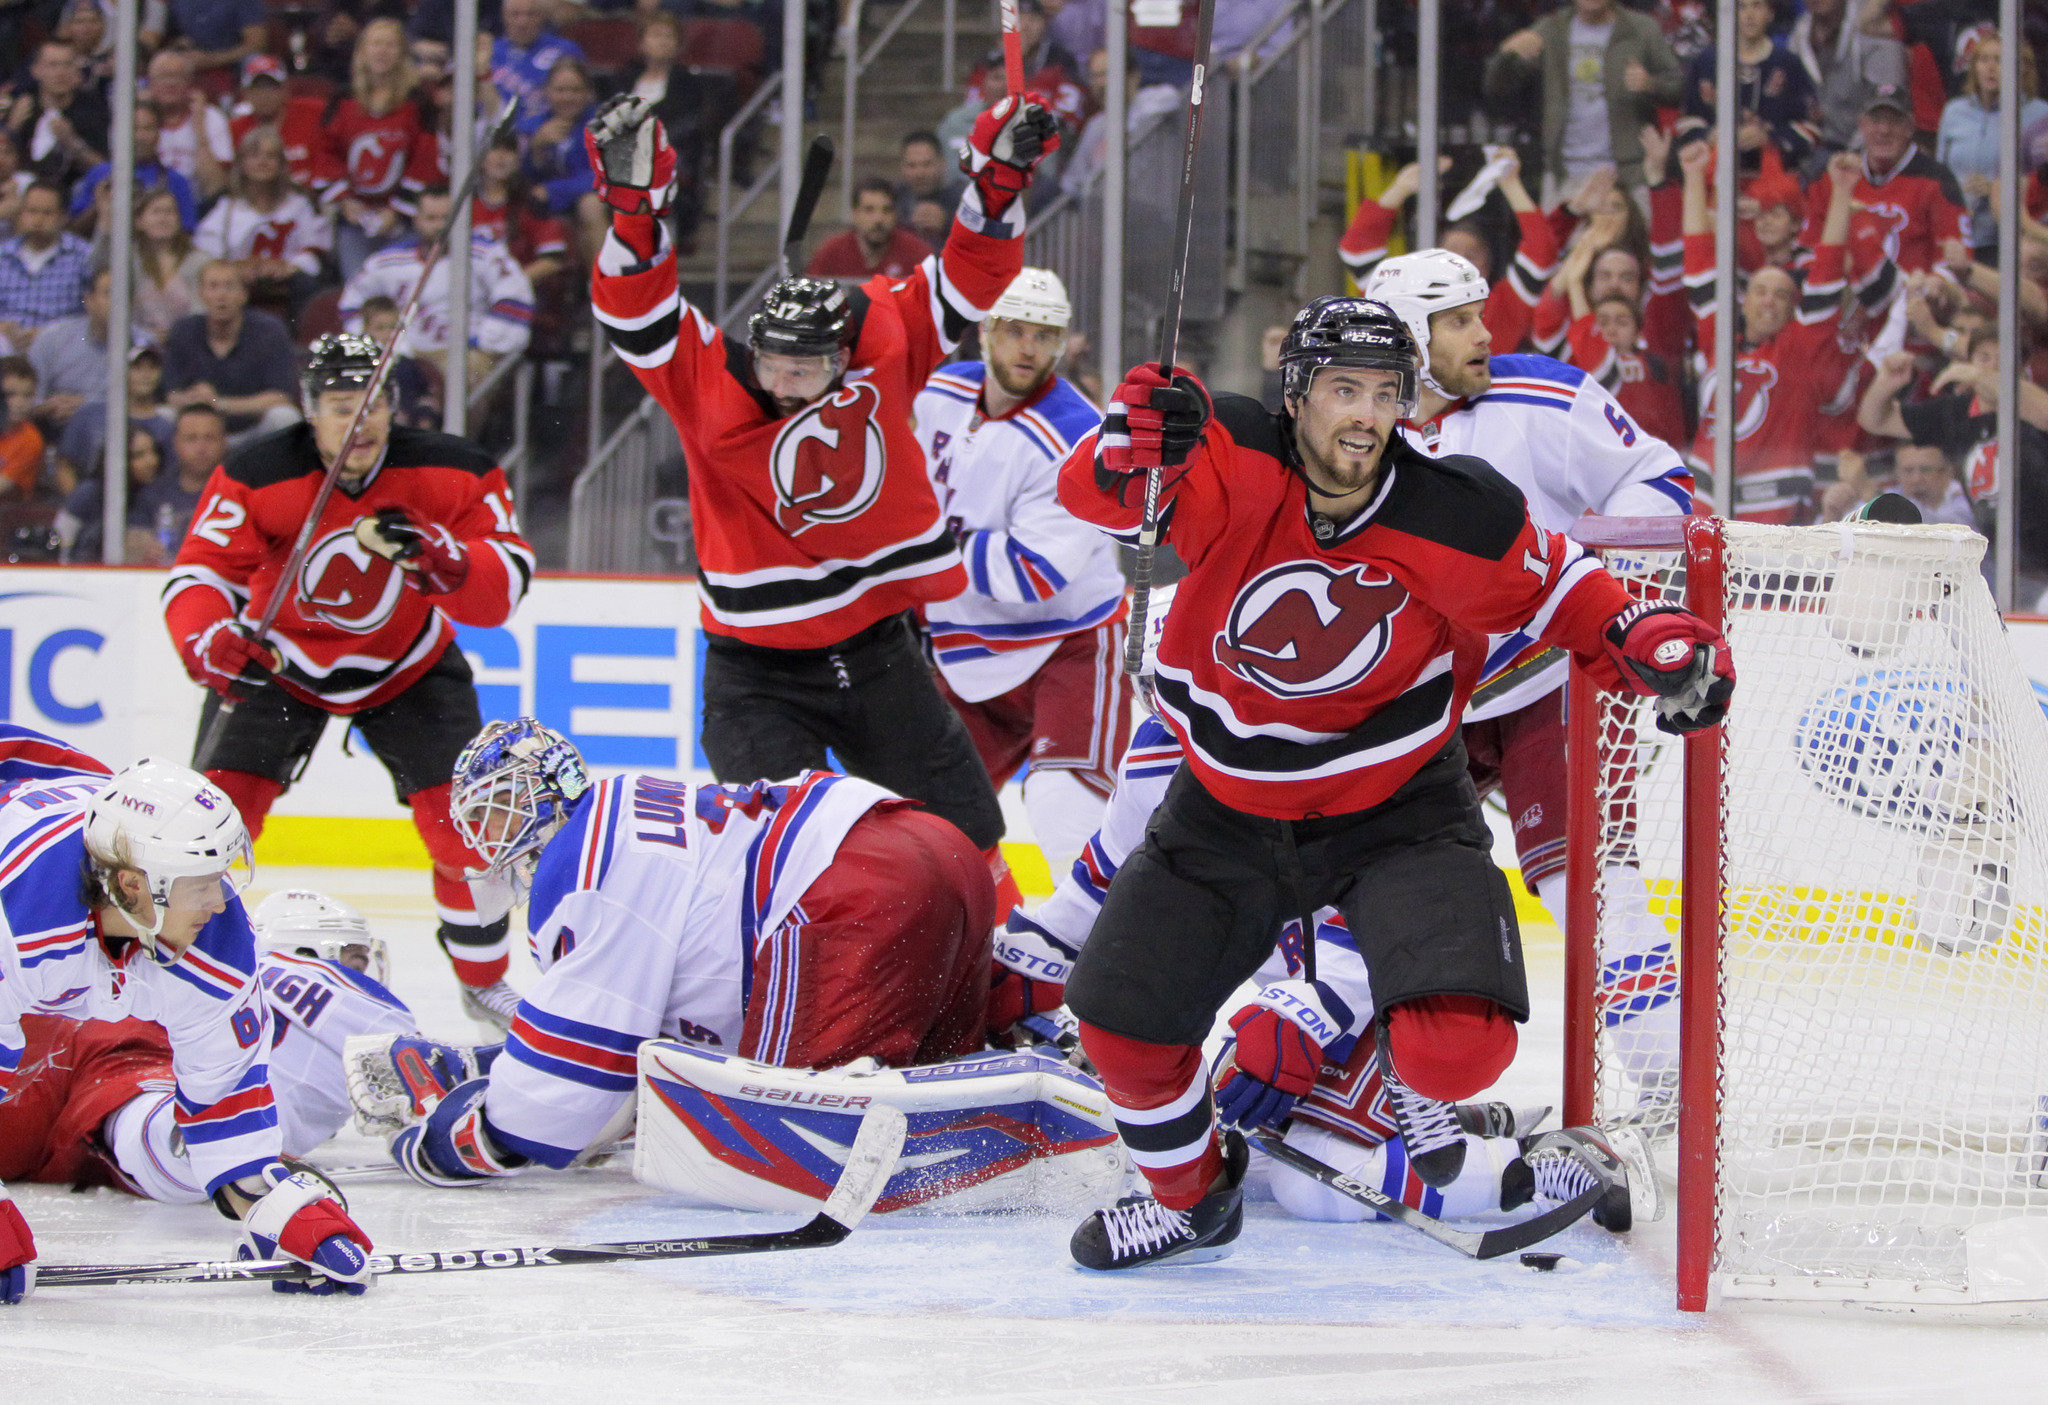 New York Rangers vs New Jersey Devils at Prudential Center